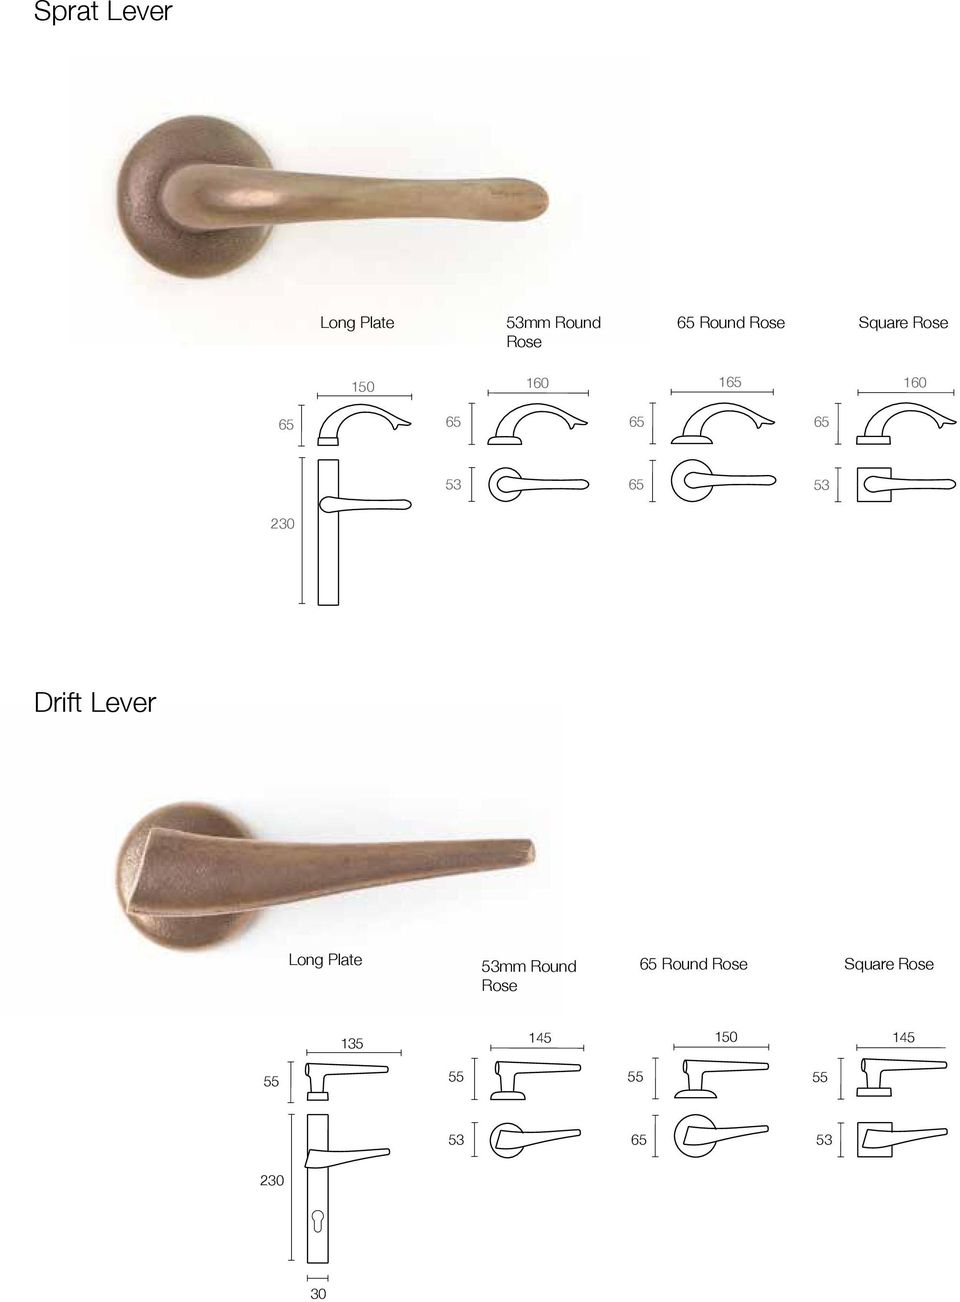 Drift Lever Long Plate 53mm Round Rose 65 Round Rose